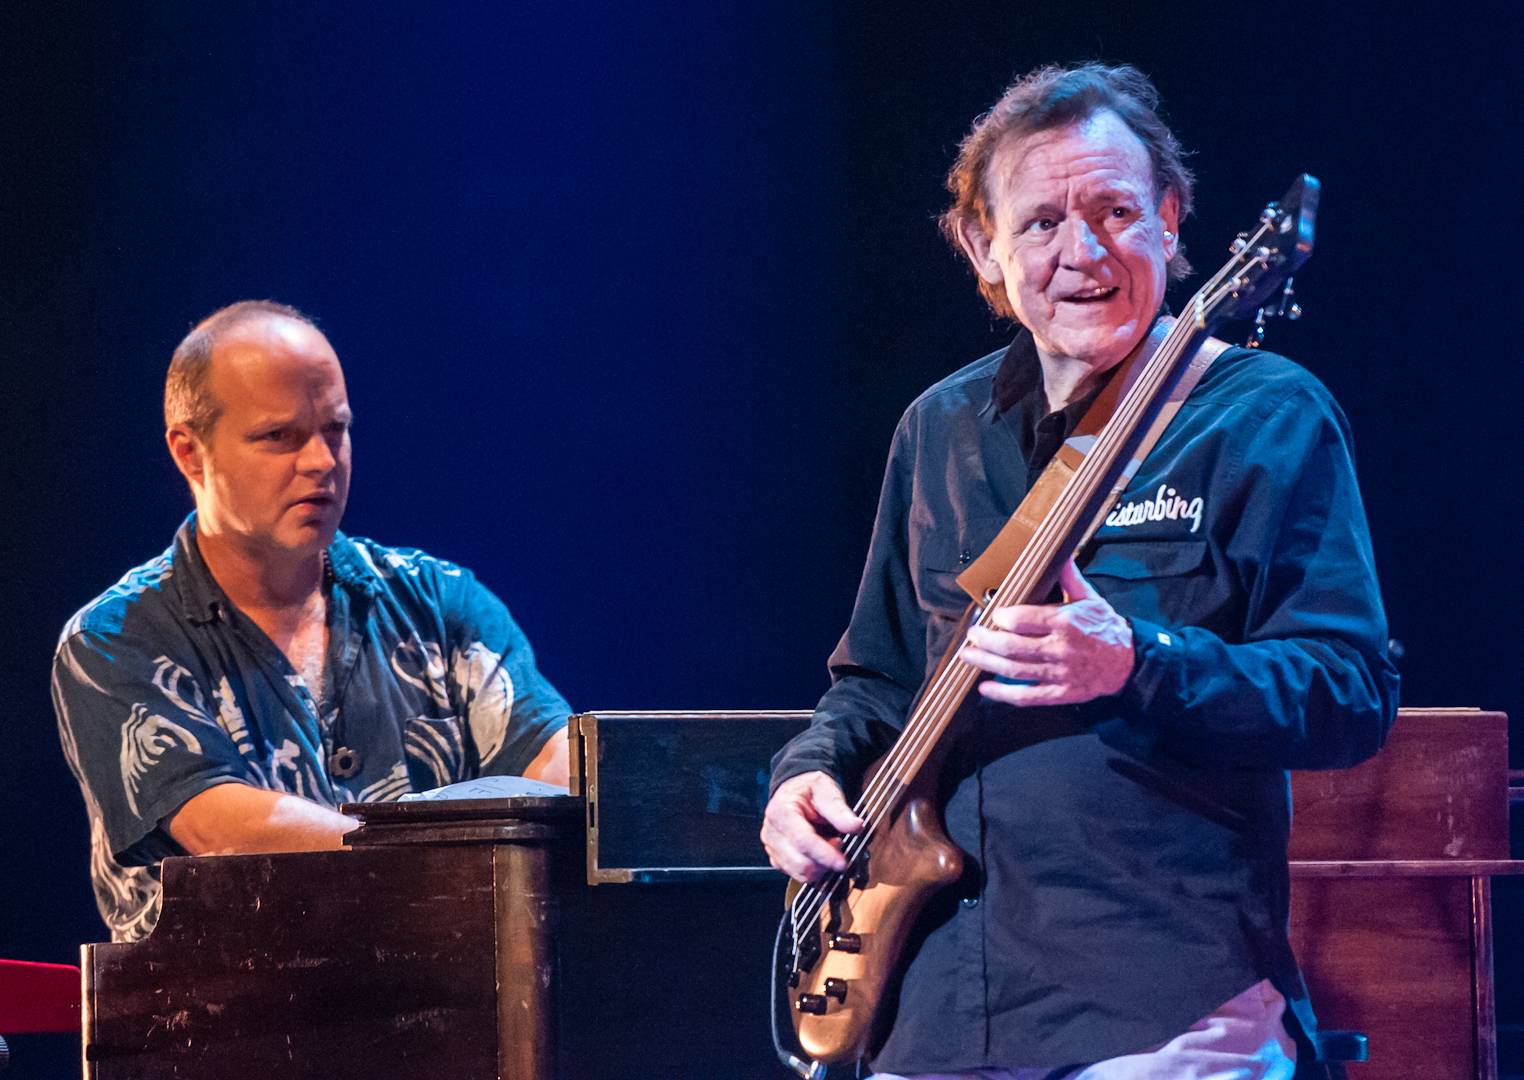 John Medeski and Jack Bruce with Spectrum Road at the Montreal International Jazz Festival 2012